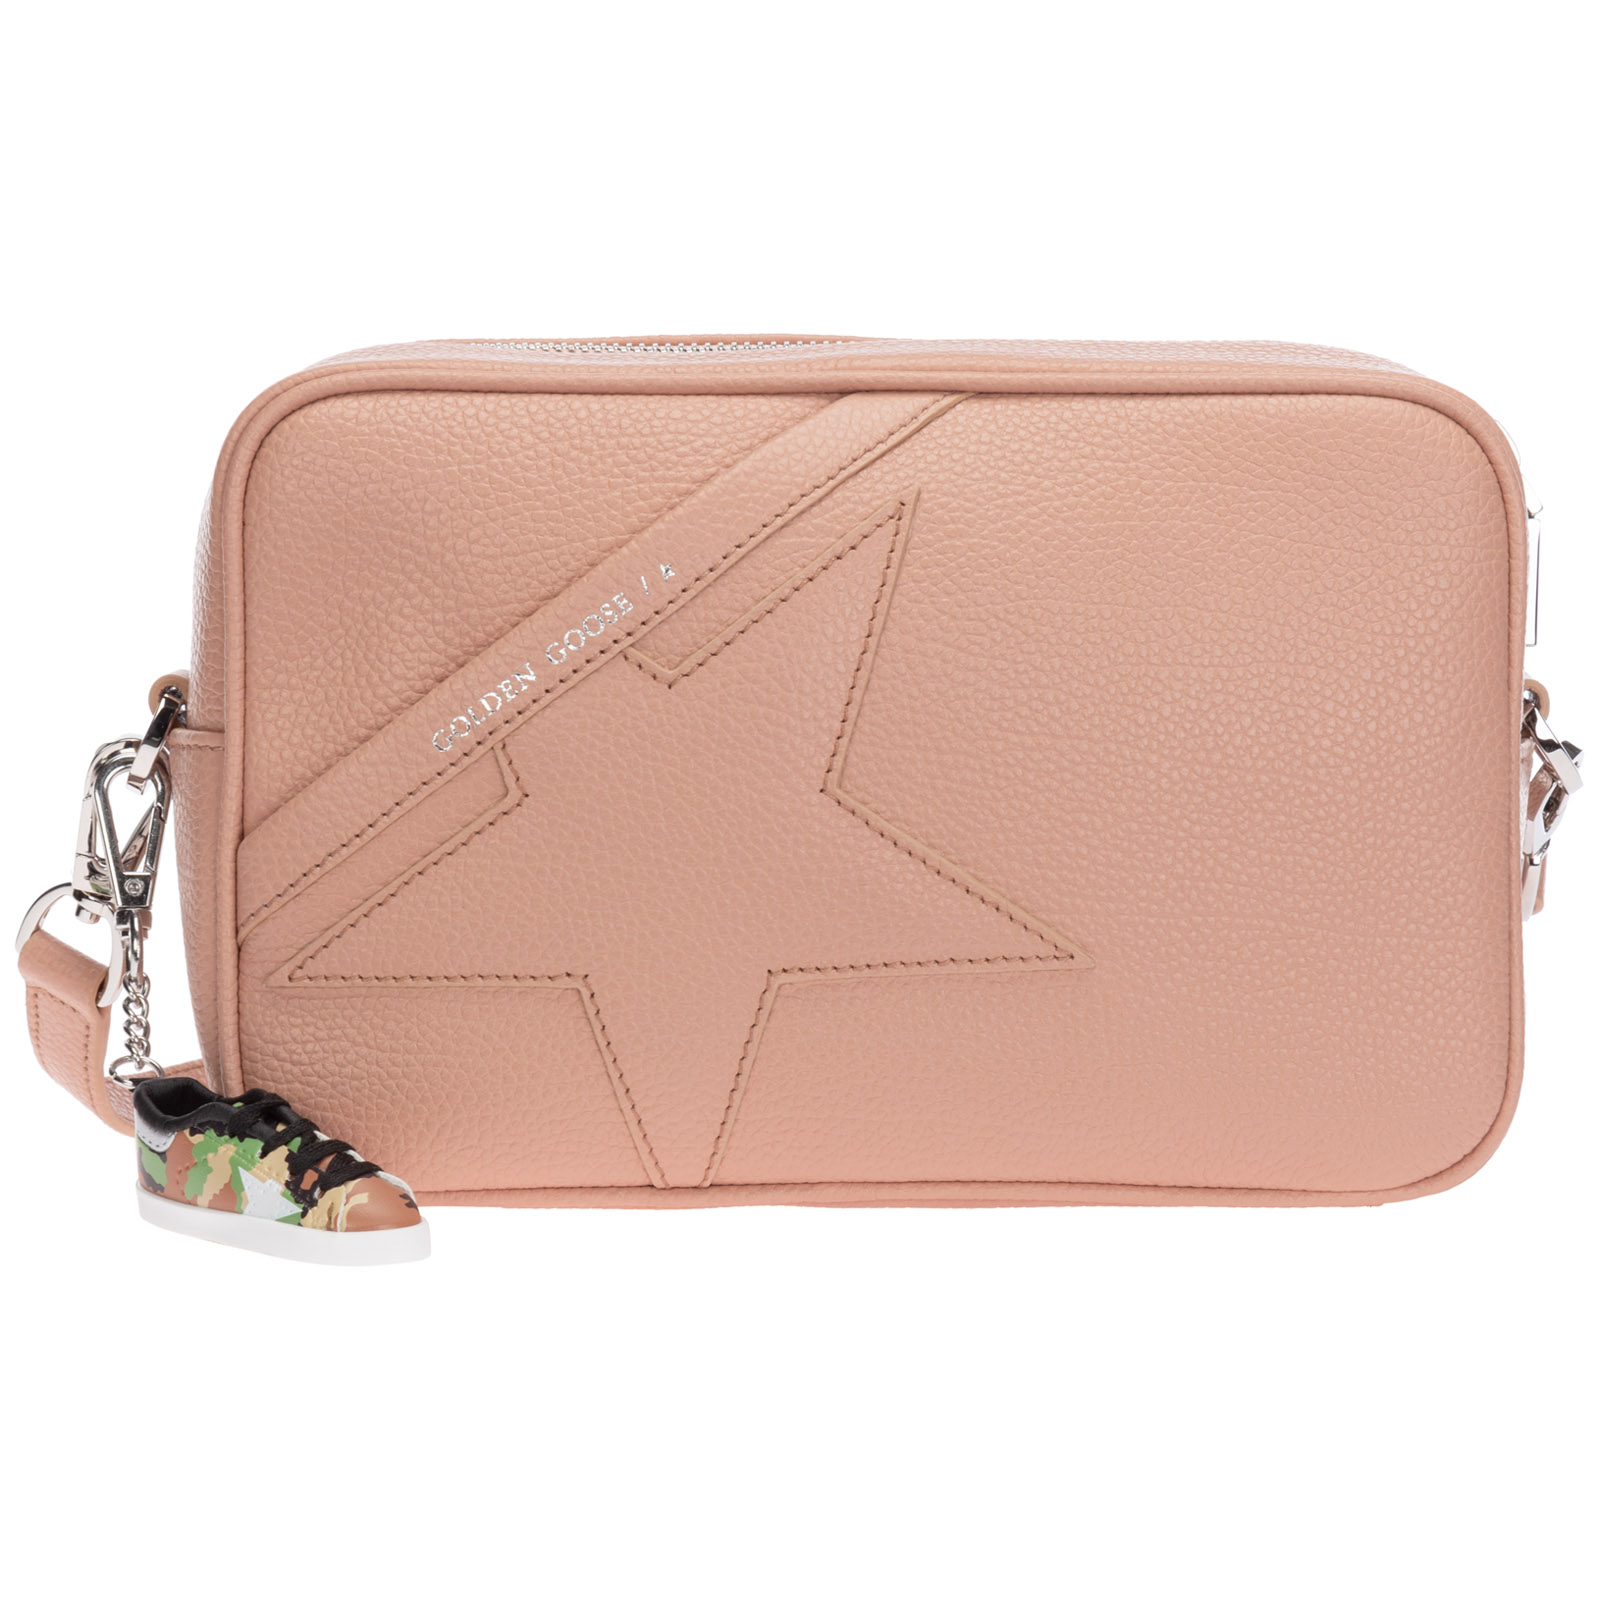 Golden Goose WOMEN'S LEATHER CROSS-BODY MESSENGER SHOULDER BAG STAR